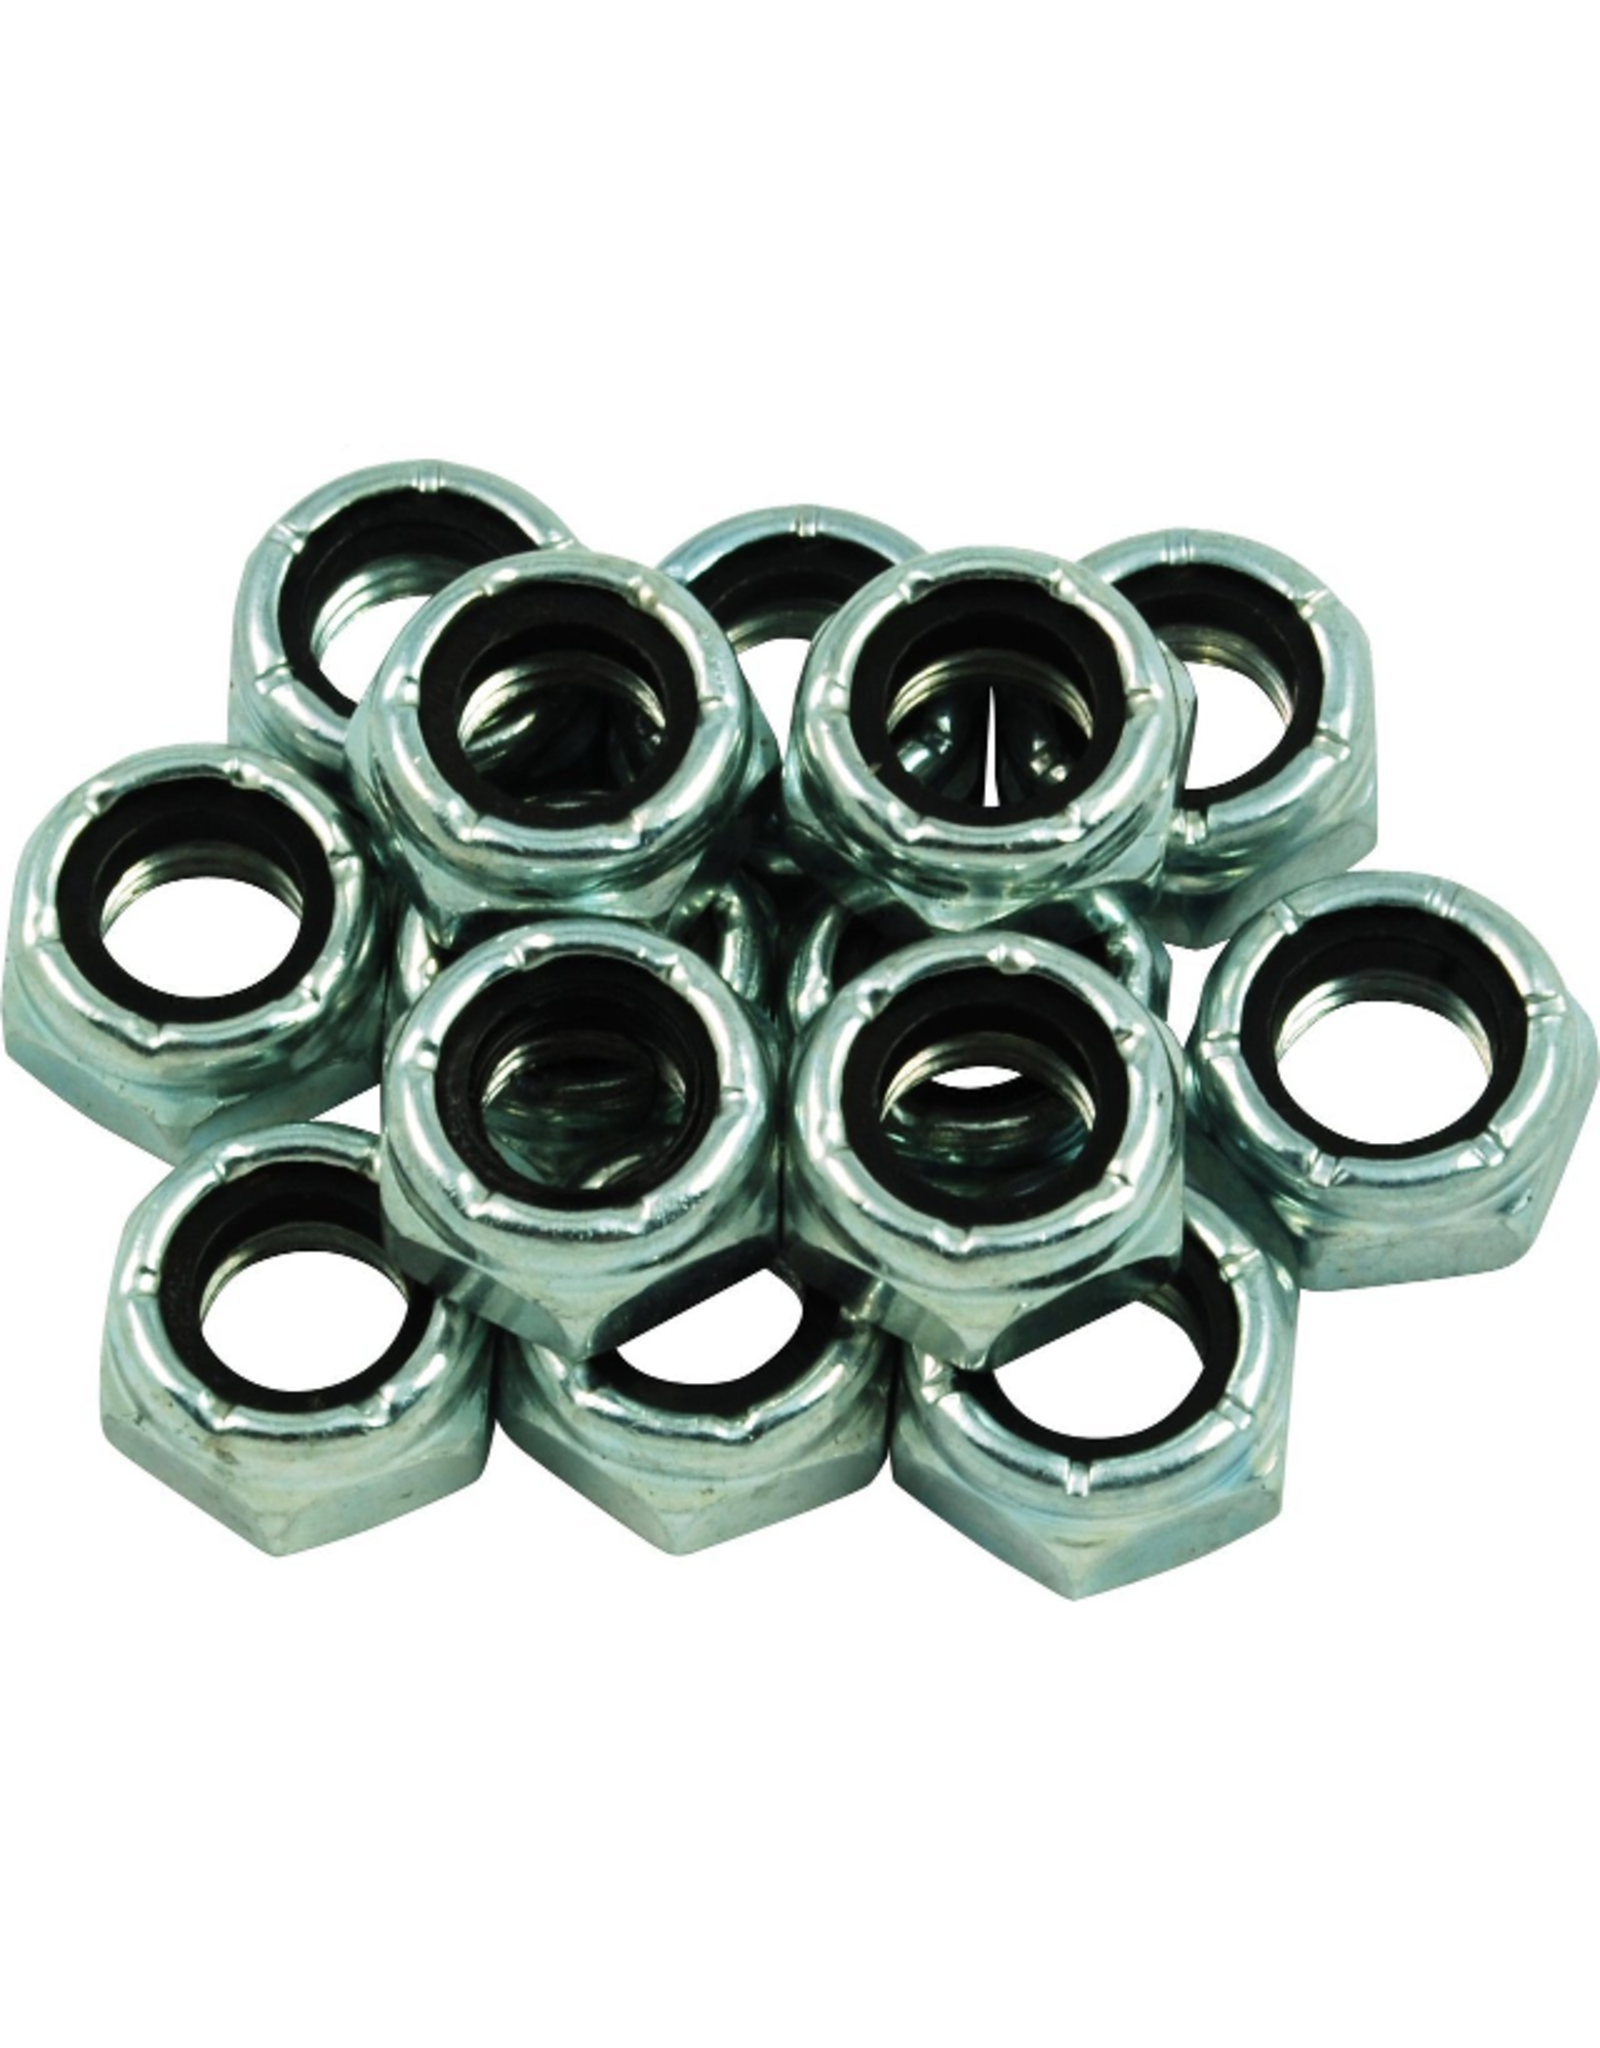 Sure Grip 8mm Nylock Wheel Nuts bag of 8